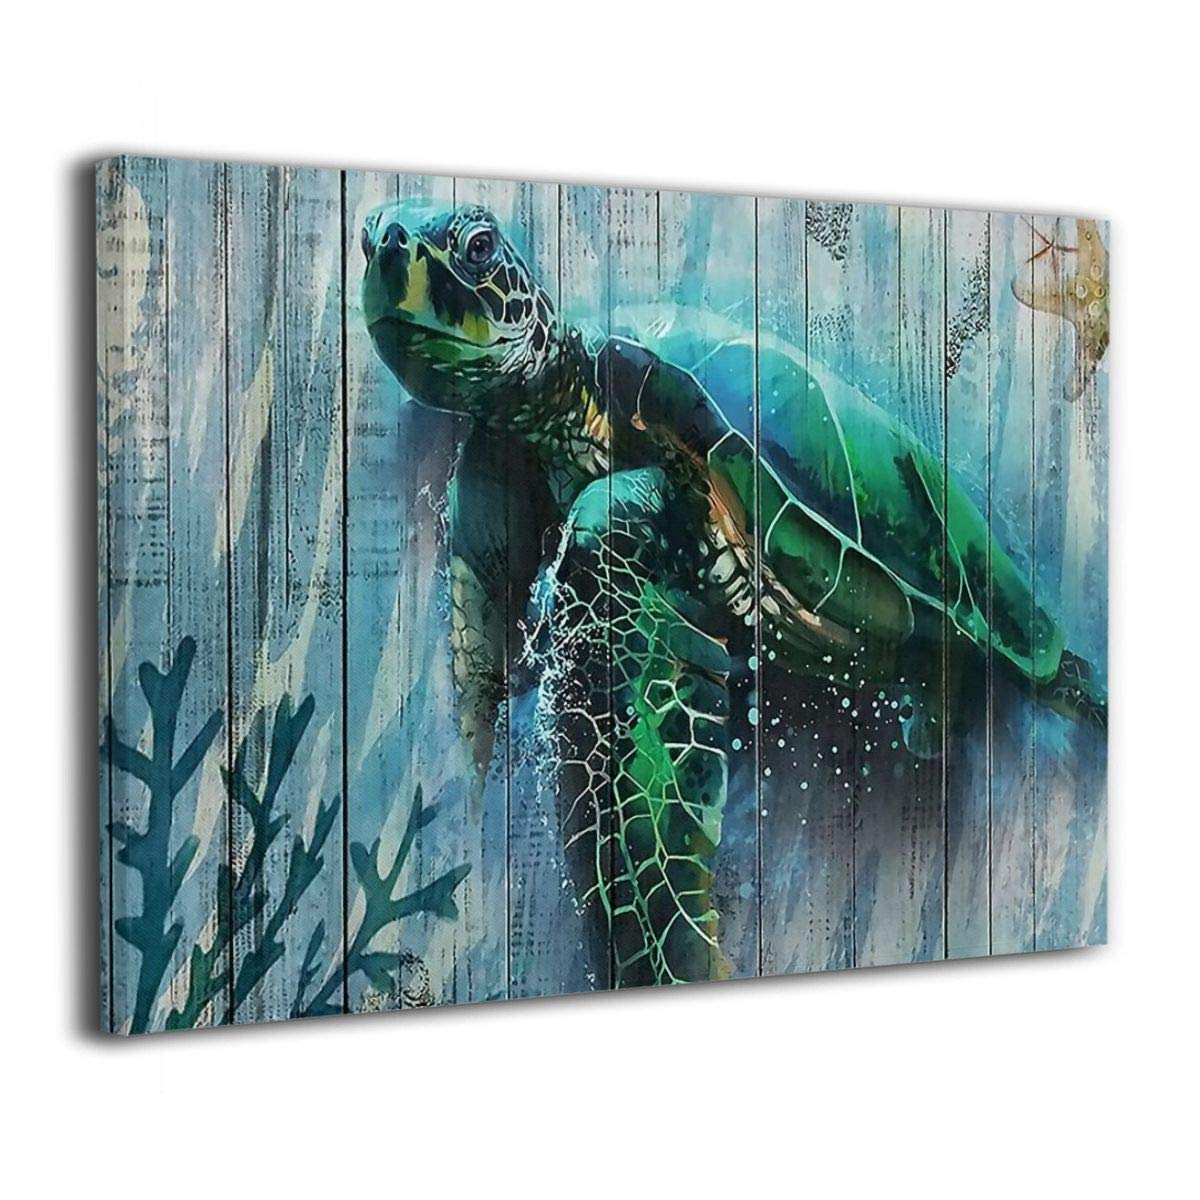 Bold And Brash Sea Turtle Canvas Wall Art Print Inner Framed Painting Pictures Home Decor Modern Decorations for Living Room Bedroom Bathroom 12x16 Inch